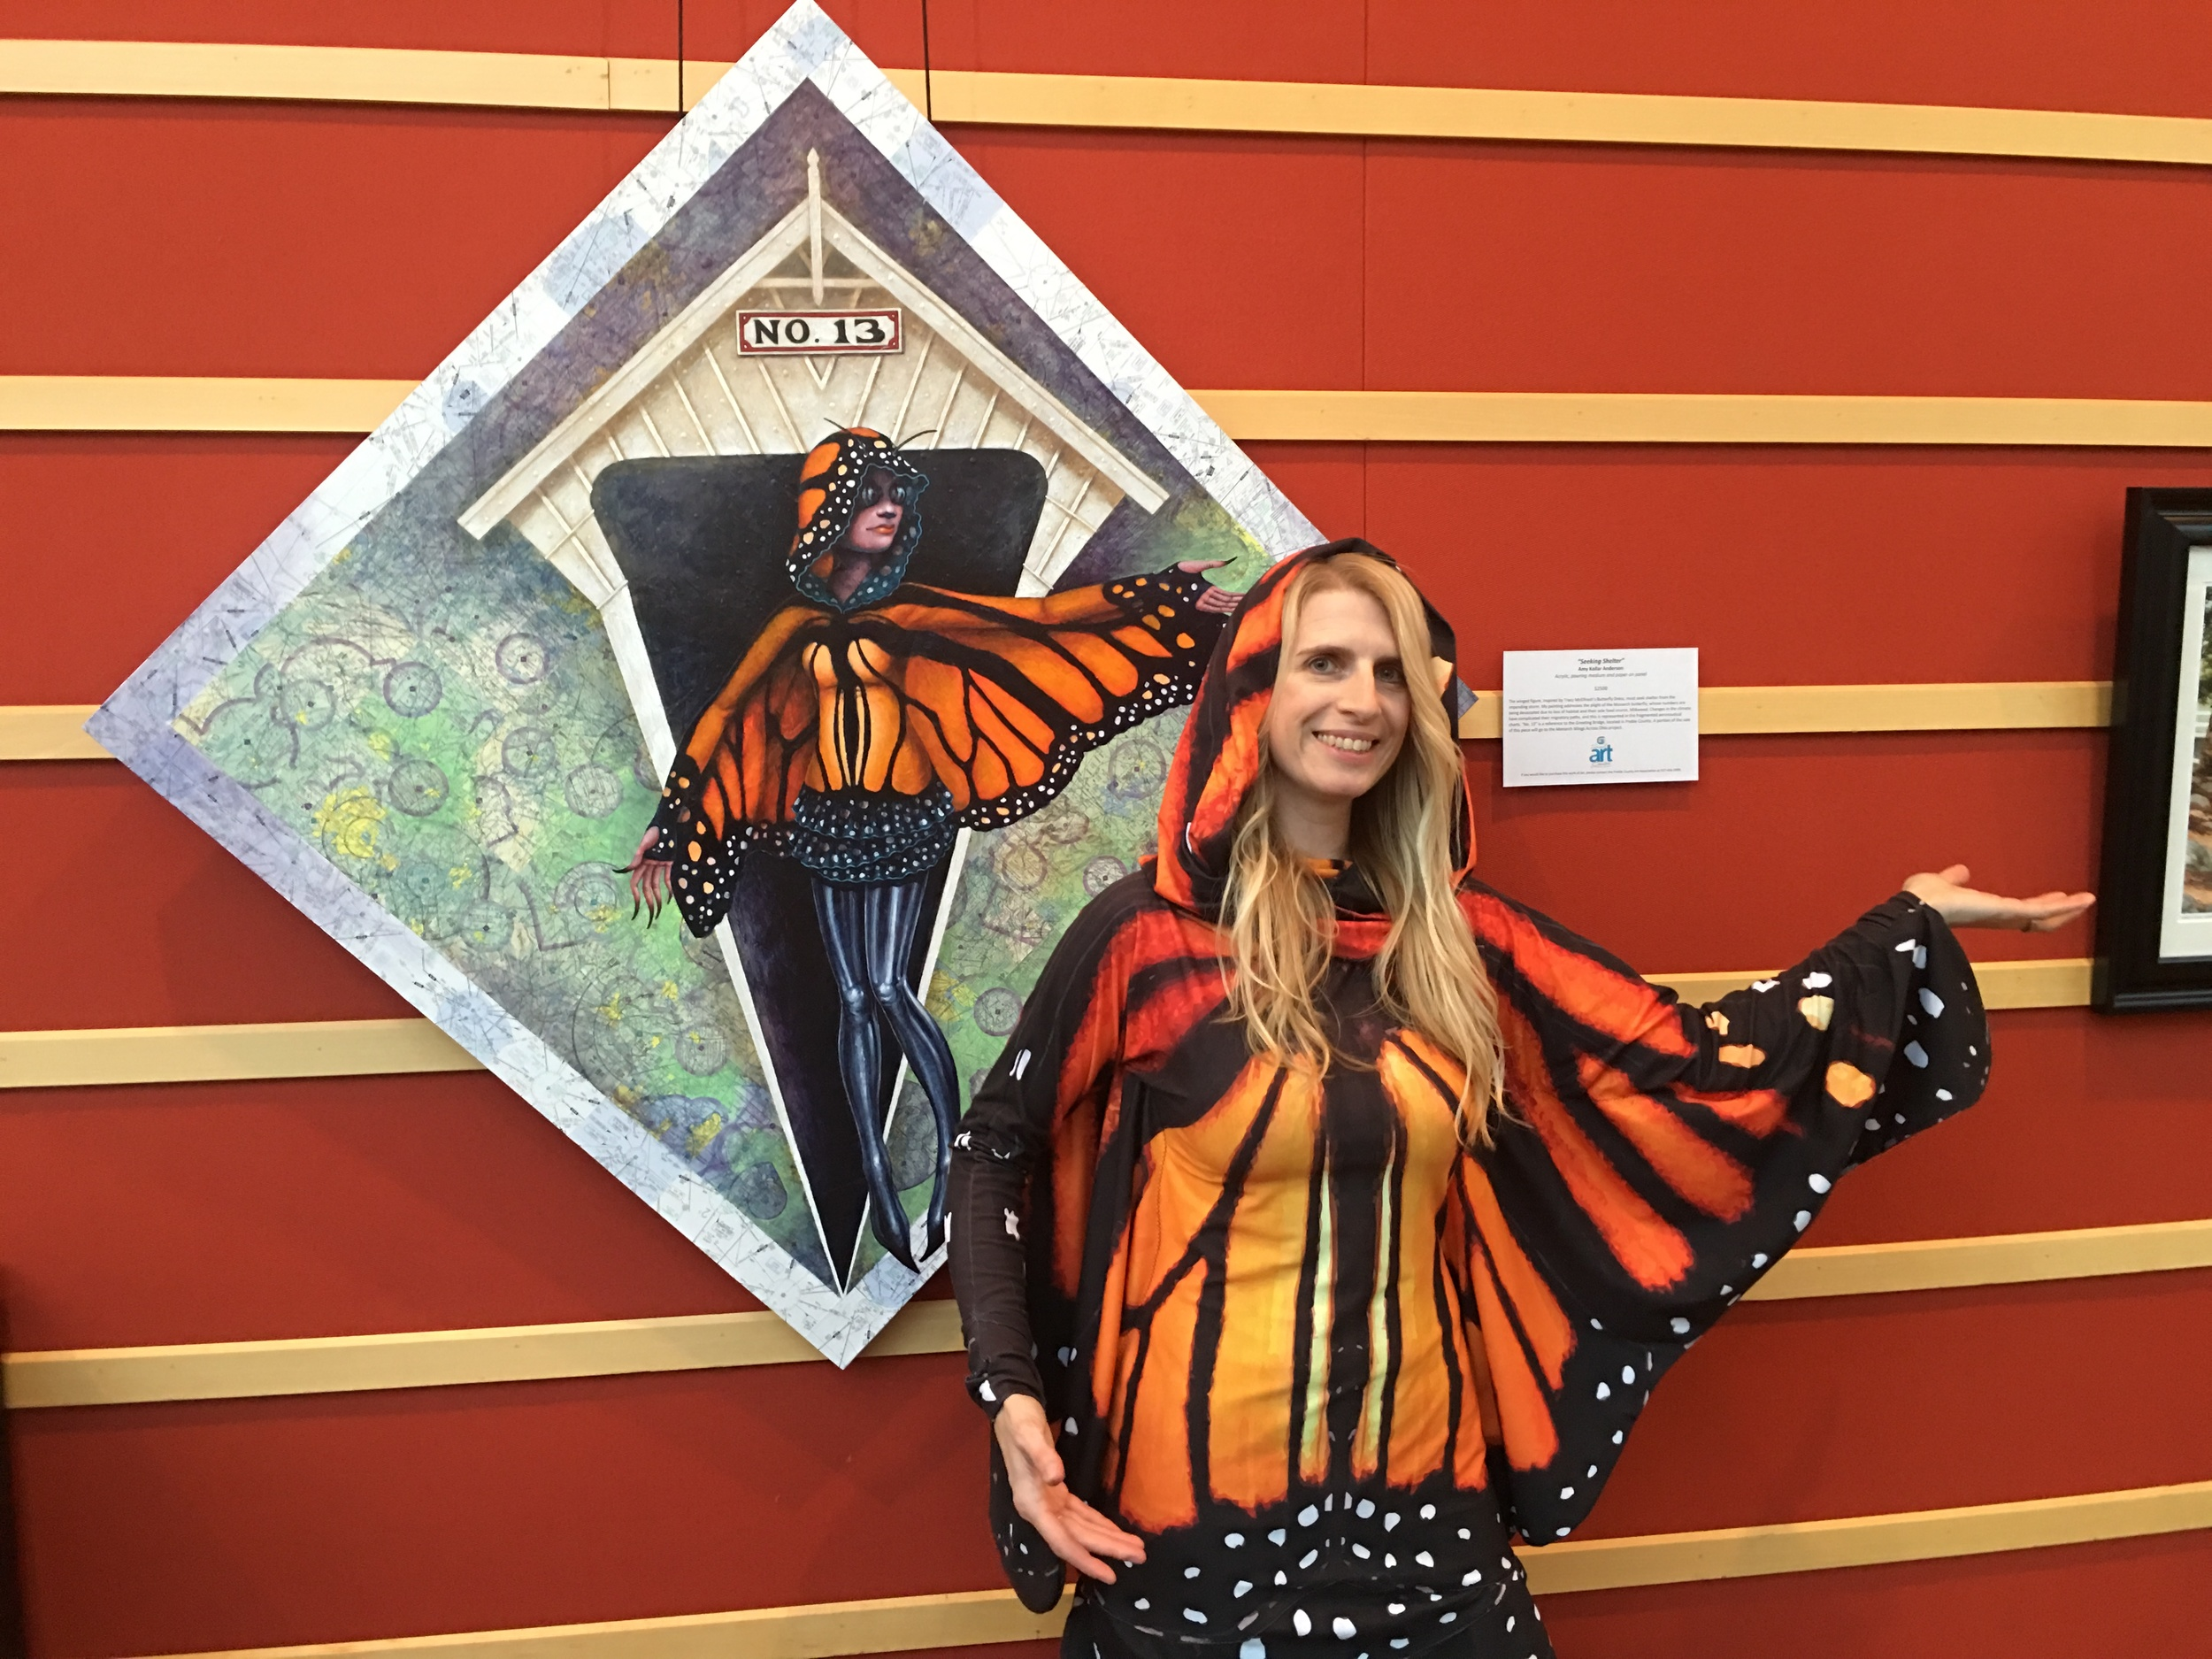 Posing in the  Butterfly Dress by Tracy McElfresh  next to my painting,   Seeking Shelter ,  which was inspired by her sewn creation, at the Schuster Performing Arts Center for  Bridges of Preble County . Thank you for letting me wear it, Tracy! I swear I will give it back...some day!